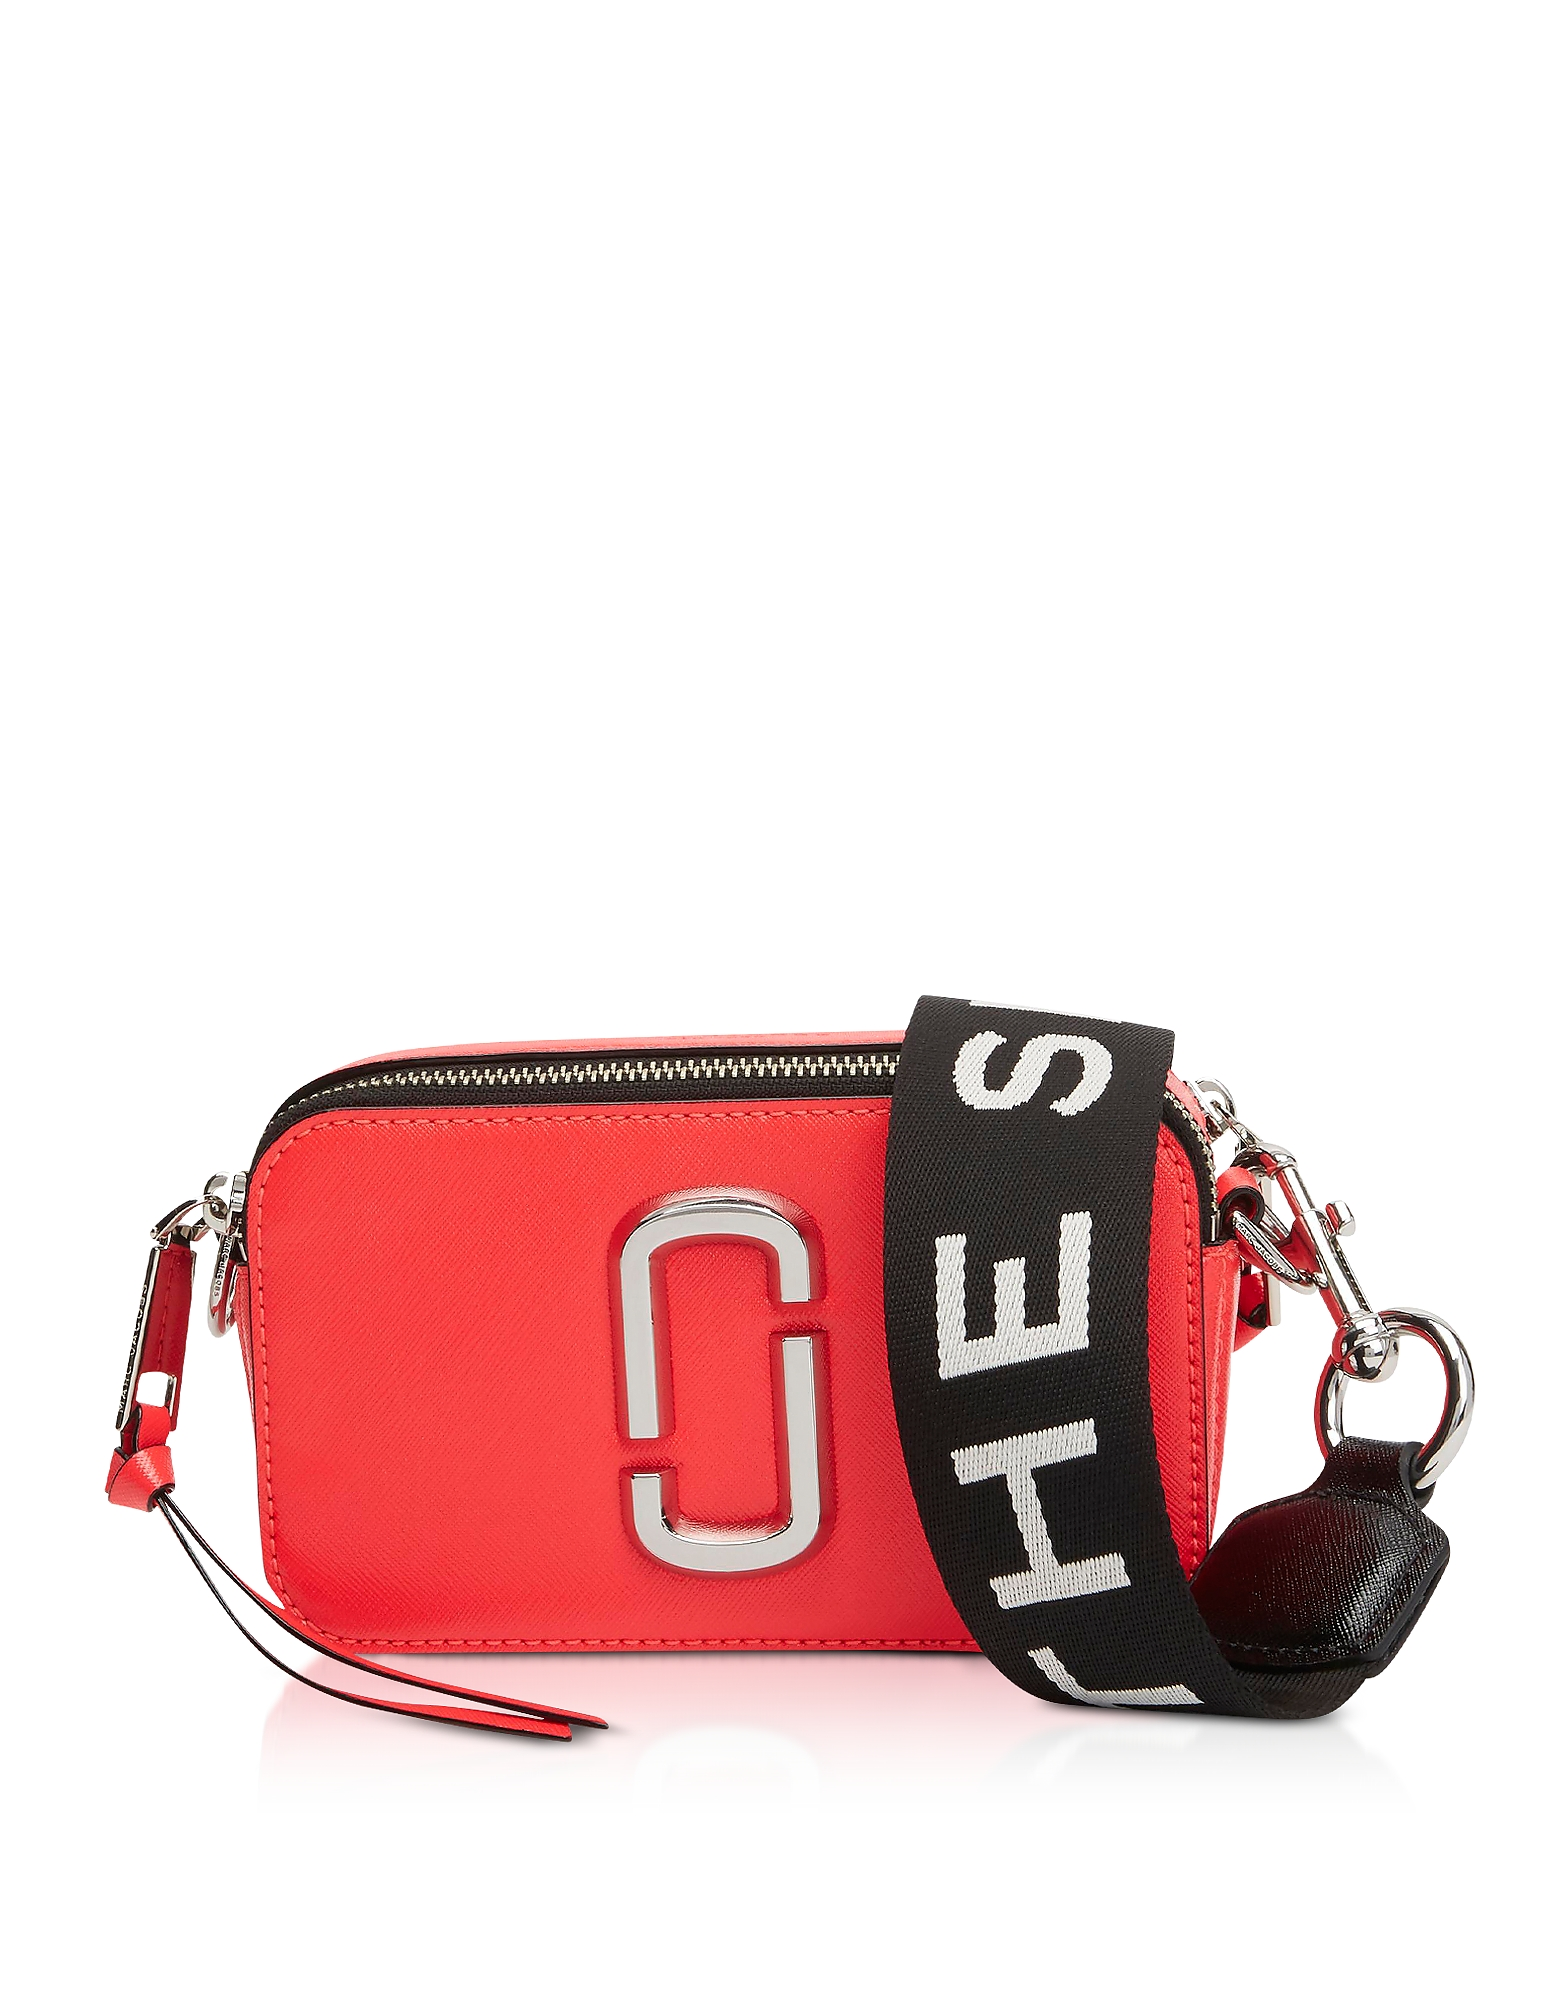 Marc Jacobs Handbags, Snapshot Fluorescent Small Camera Bag